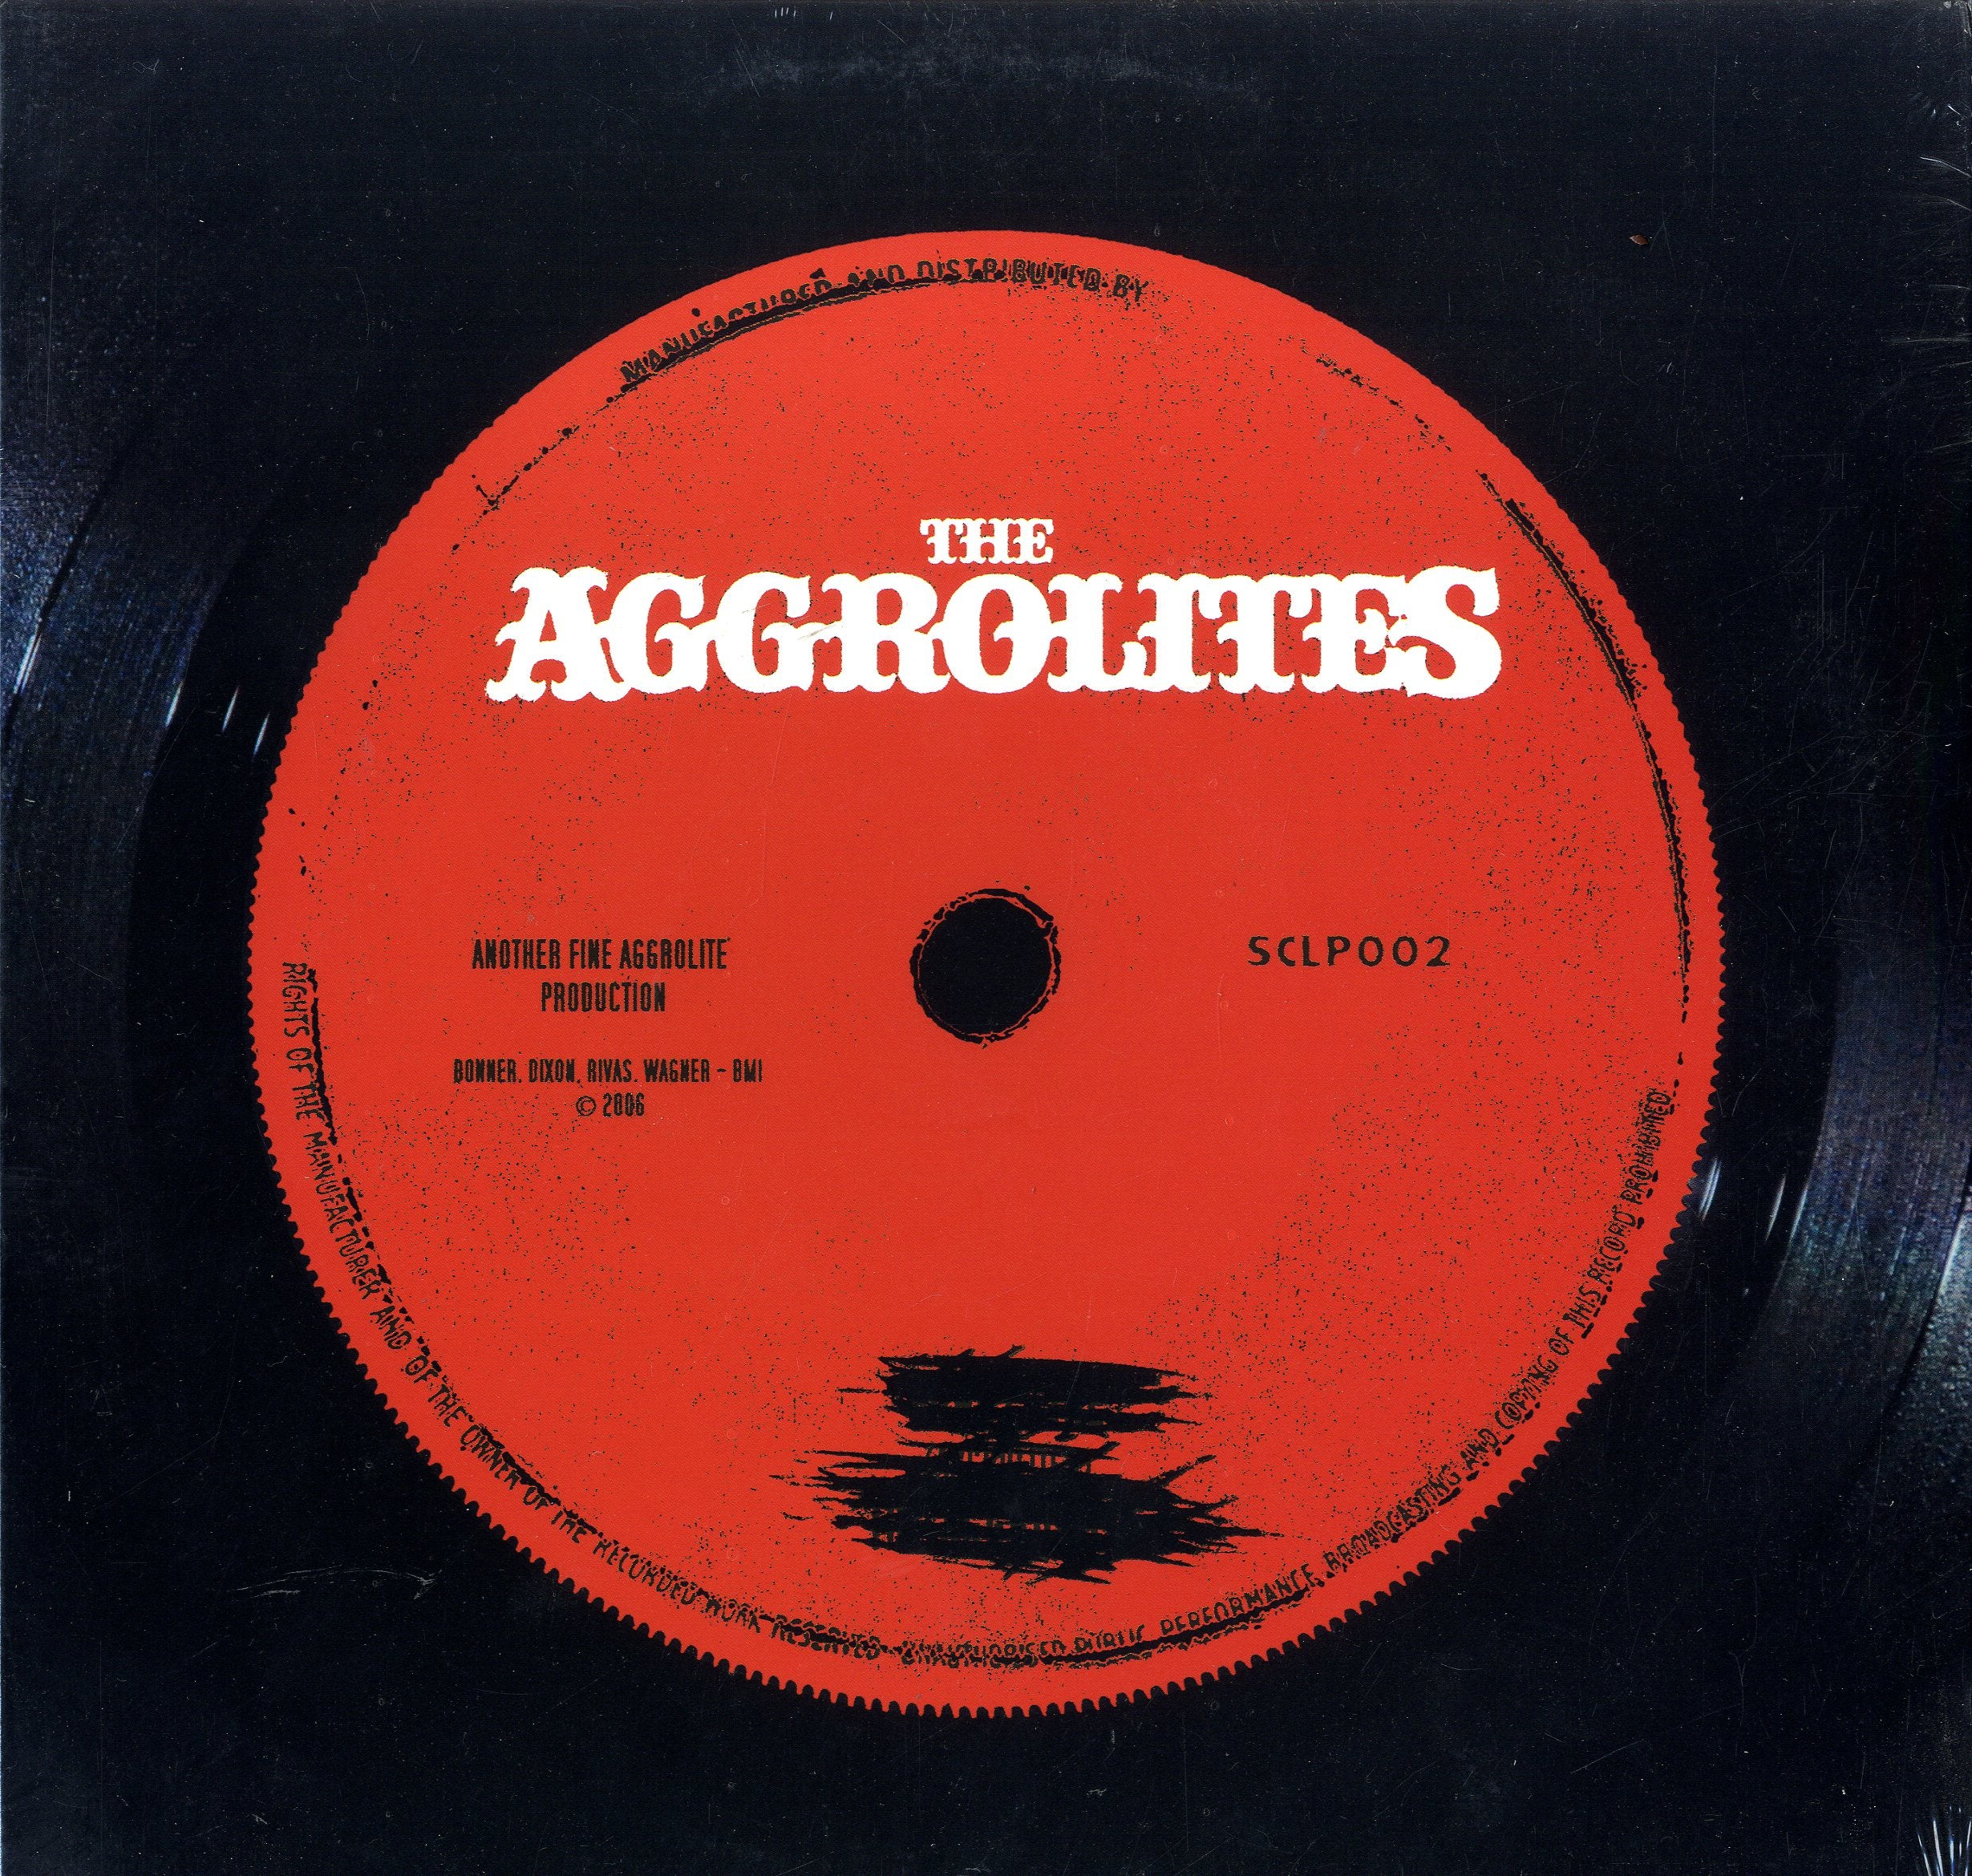 THE AGGROLITES [The Aggrolites]